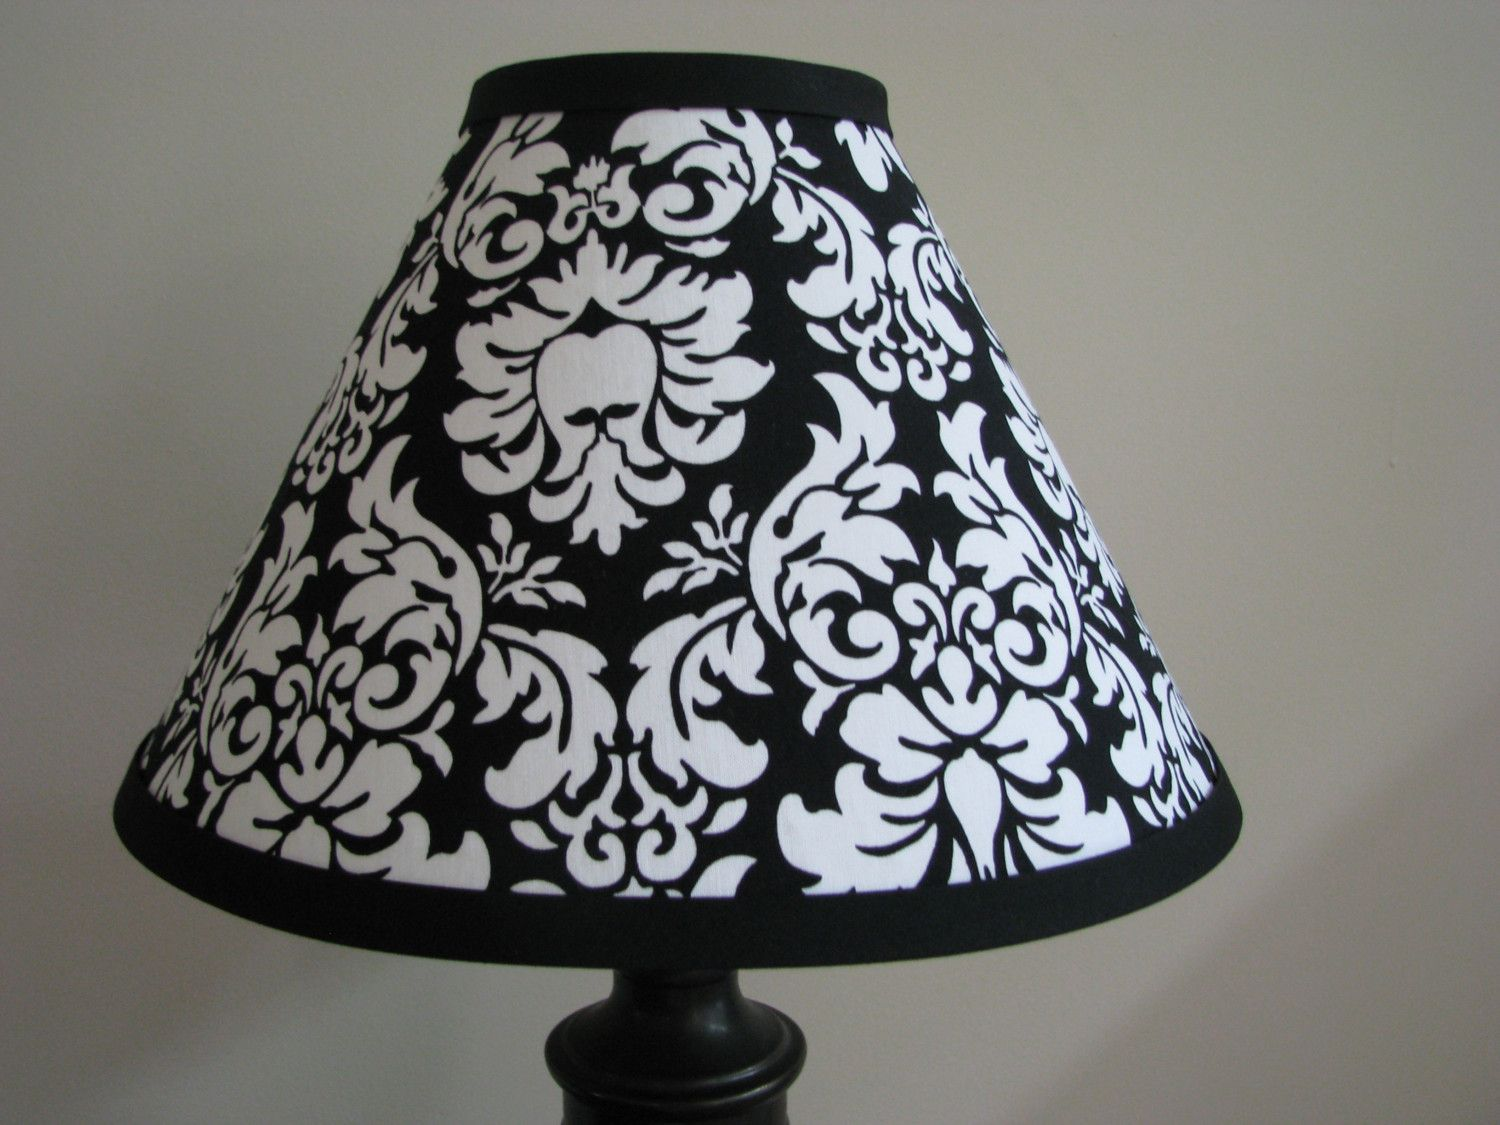 Image detail for black and white damask lamp shade bedroom lamp image detail for black and white damask lamp shade bedroom lamp nursery light aloadofball